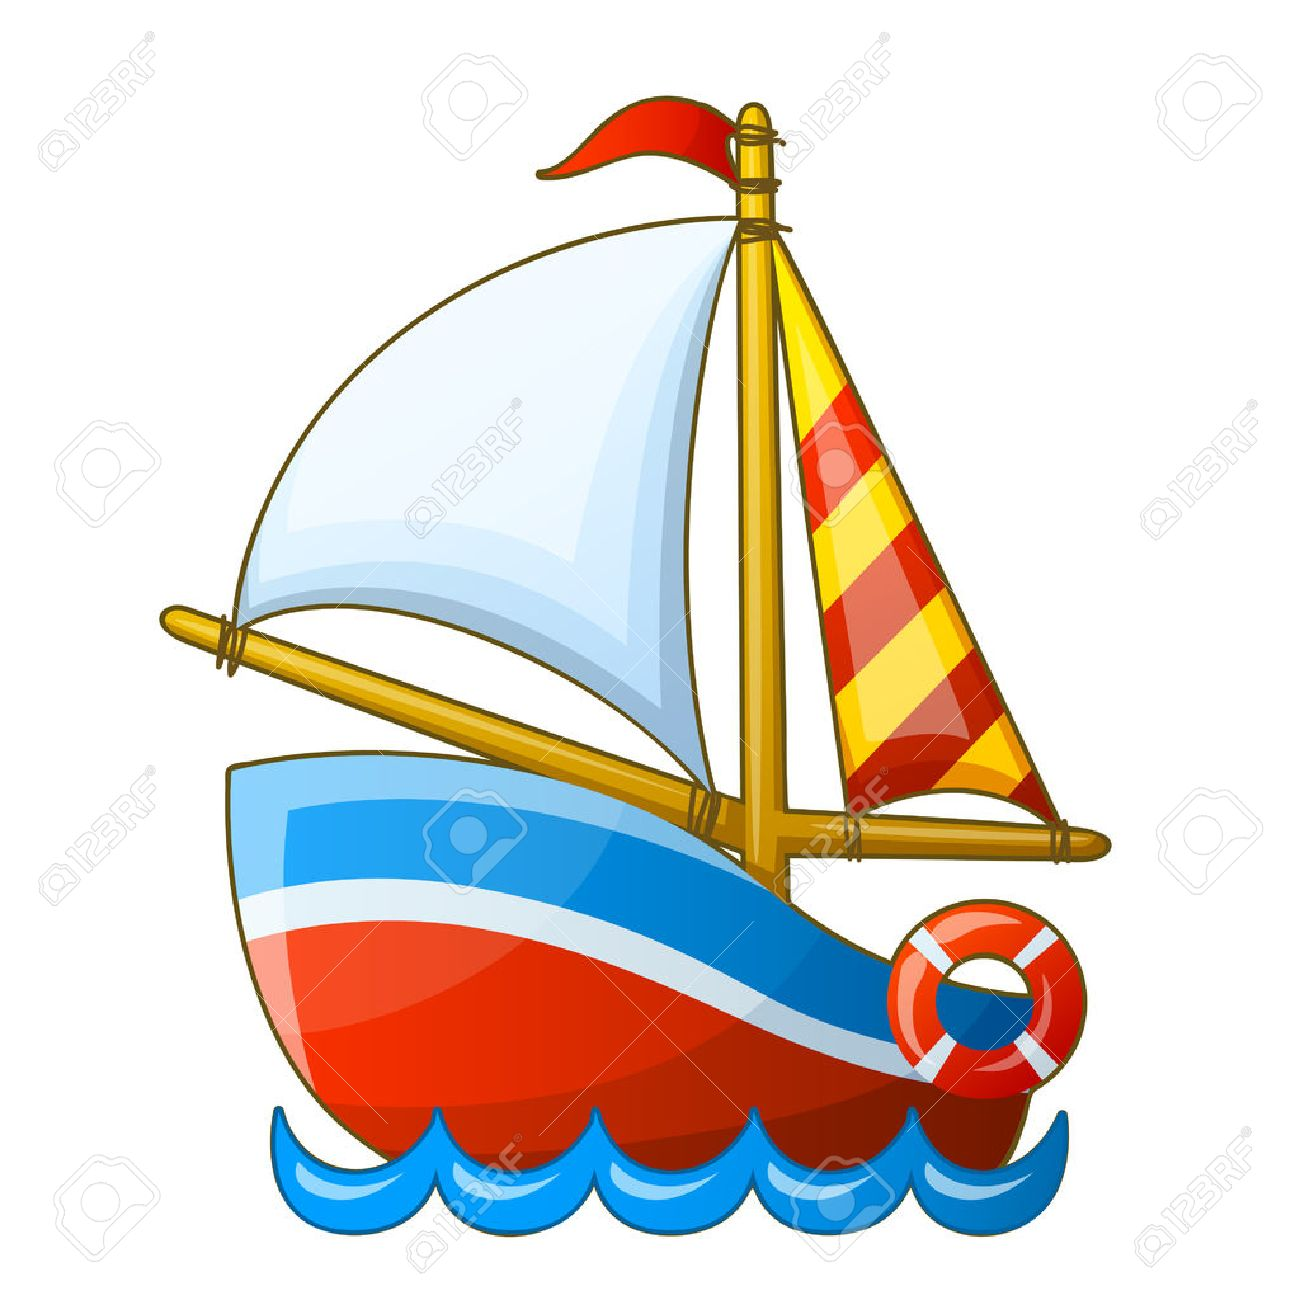 boat cartoon stock photos royalty free boat cartoon images rh 123rf com cartoon rowing boat pictures cartoon speed boat pictures